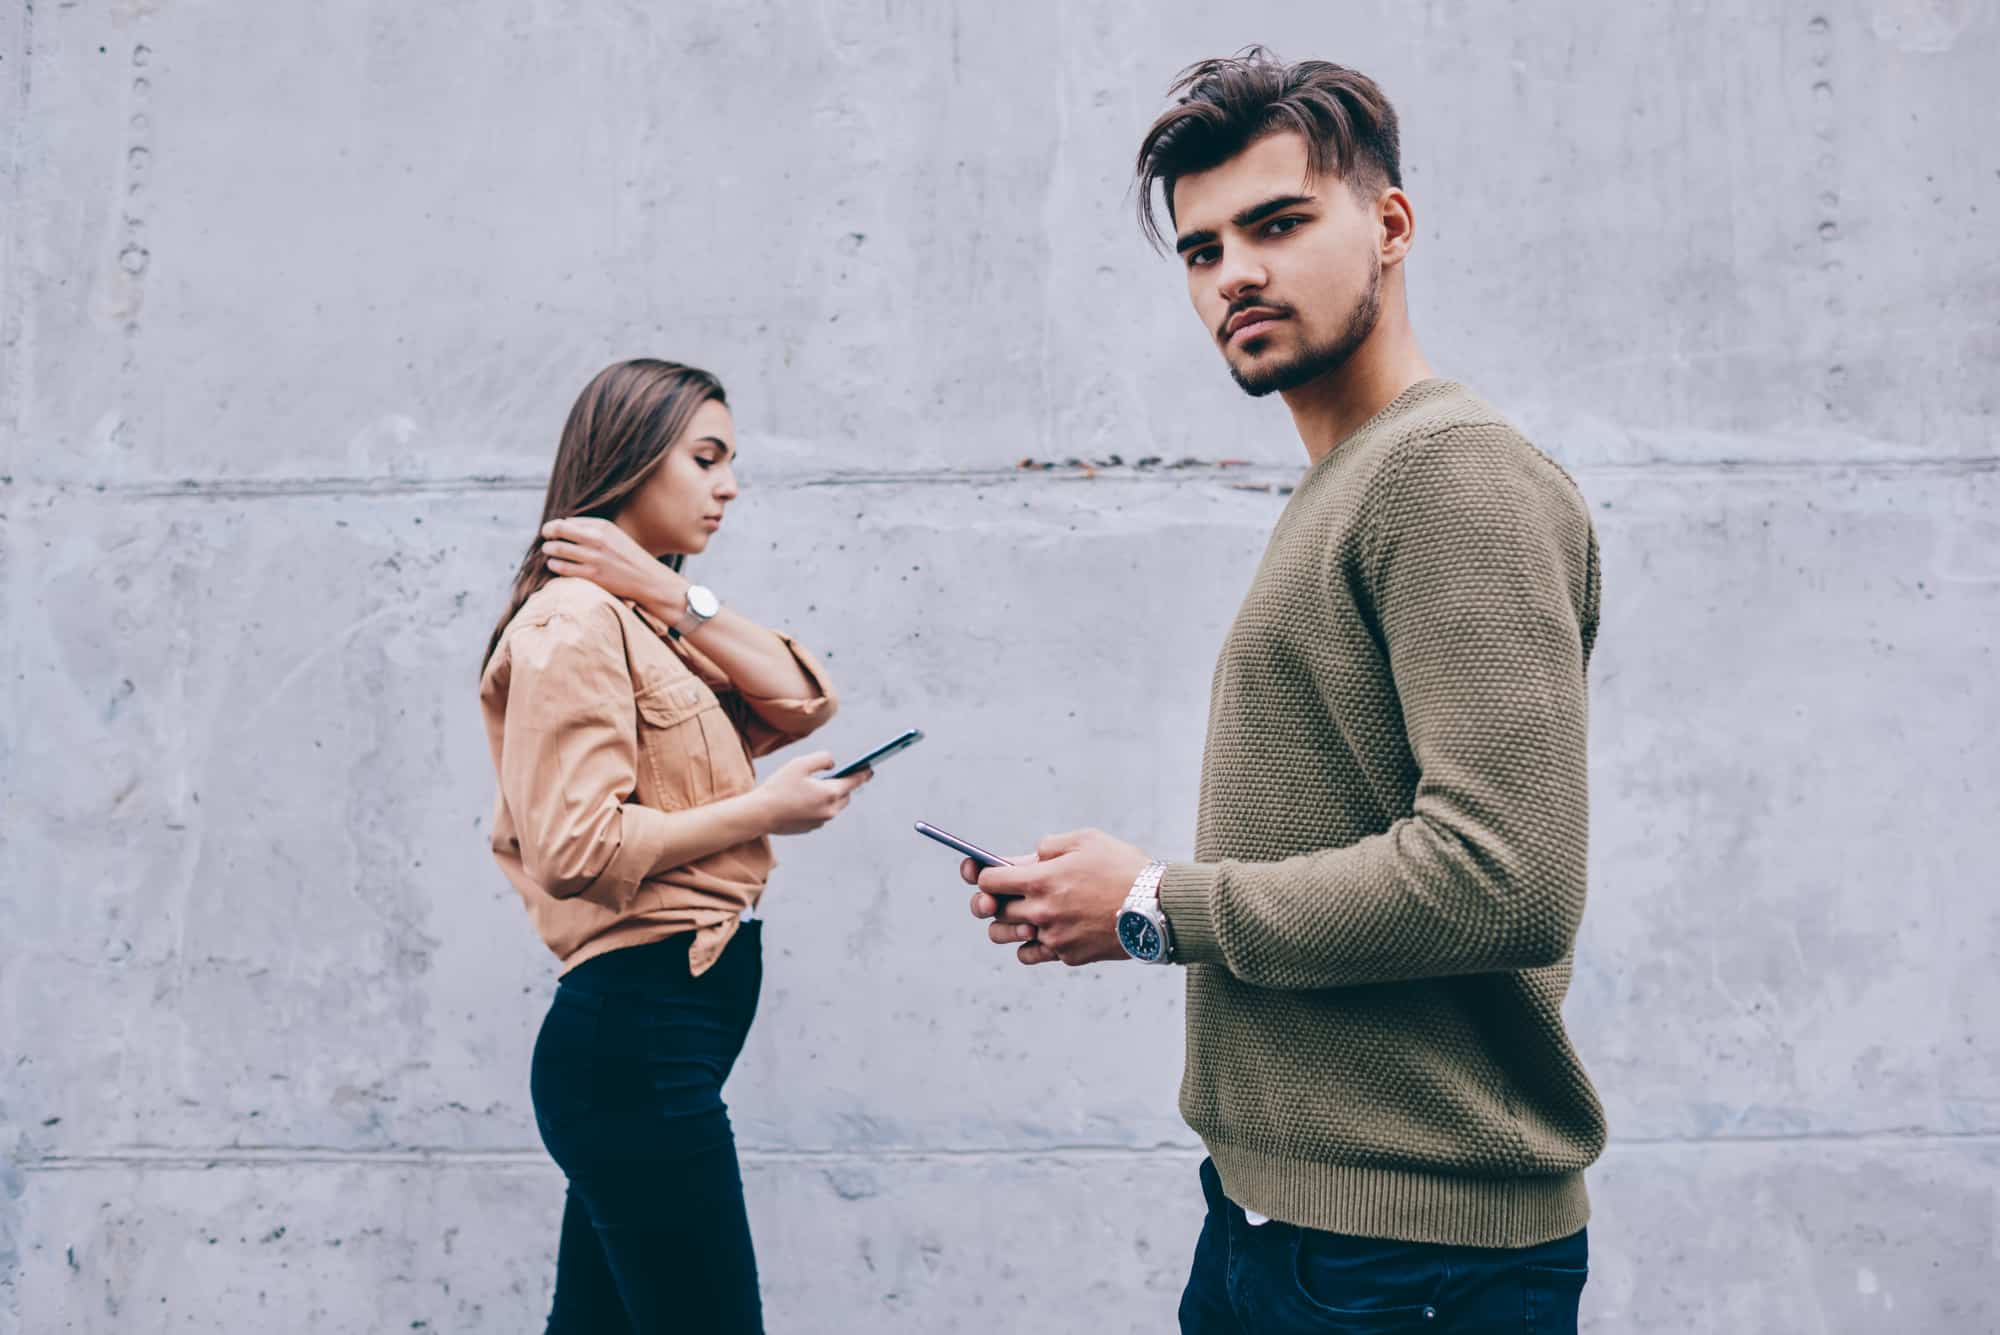 Signs a gemini guy likes you